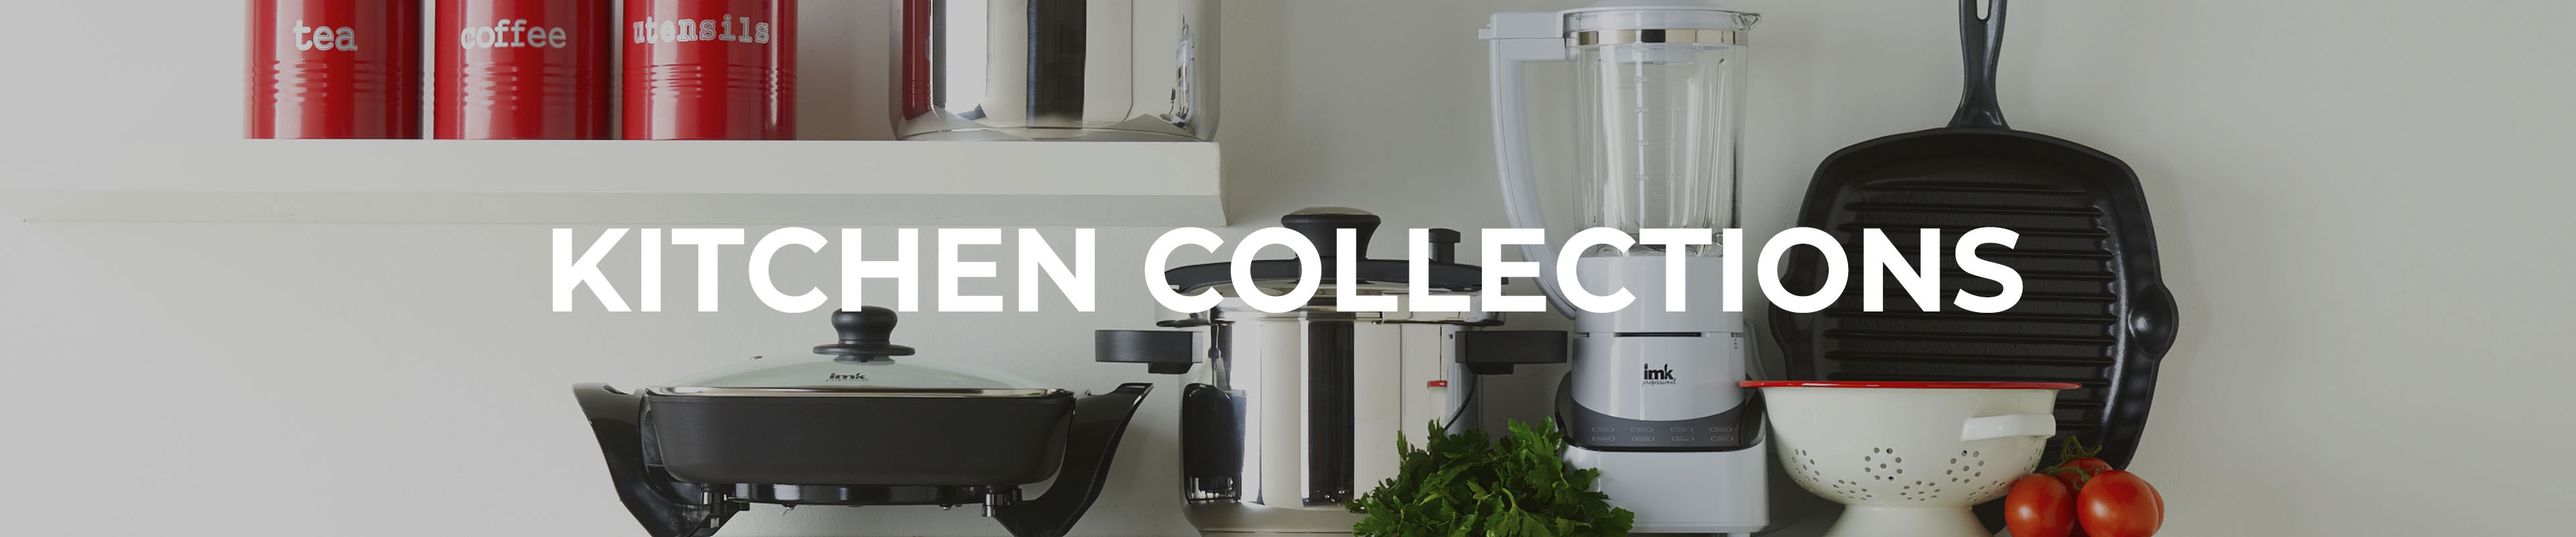 Shop Our Kitchen Collections